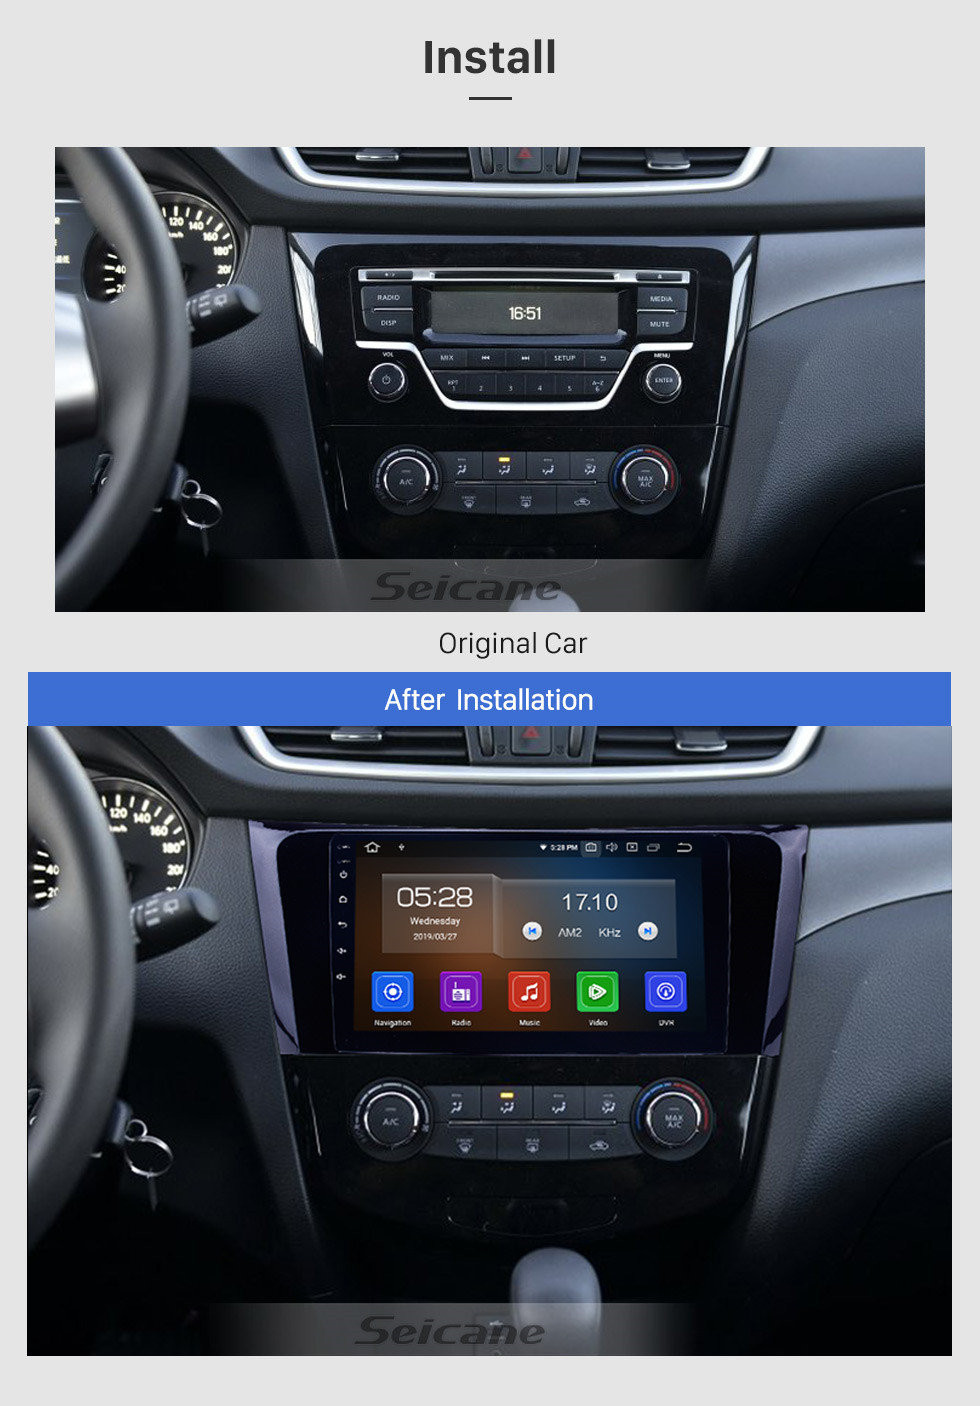 Seicane 9 inch HD touchscreen Radio GPS navigation system Android 10.0 for 2012-2017 NEW Nissan X-TRAIL Qashqai Steering Control Wheel 3G/4G WiFi Audio Bluetooth OBD2